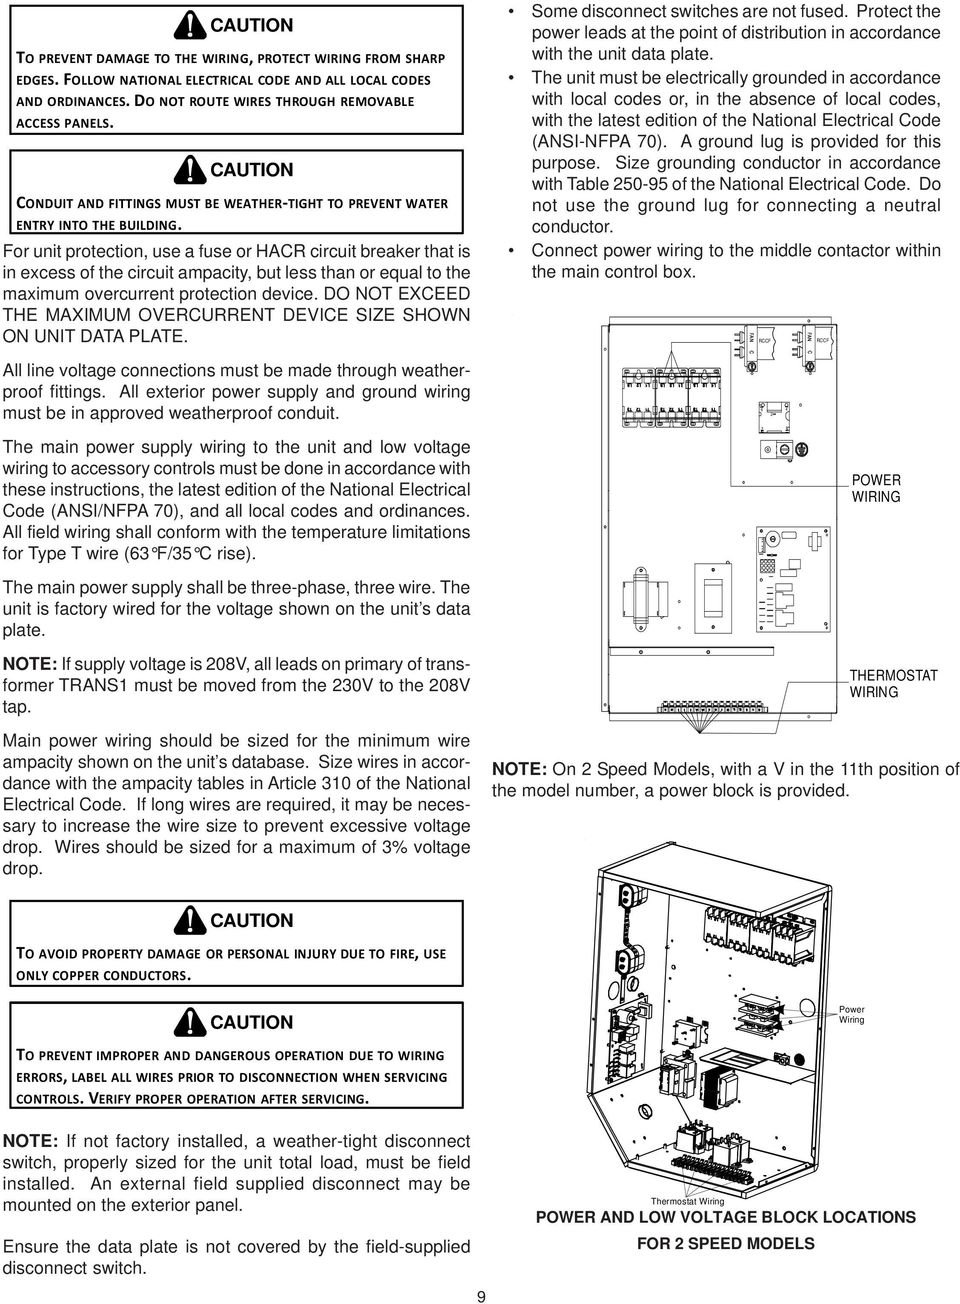 Installation Instructions For Commercial Heating Cooling 75 Ton Electrical Durante Electric Inc Pa Unit Protection Use A Fuse Or Har Circuit Breaker That Is In Excess Of